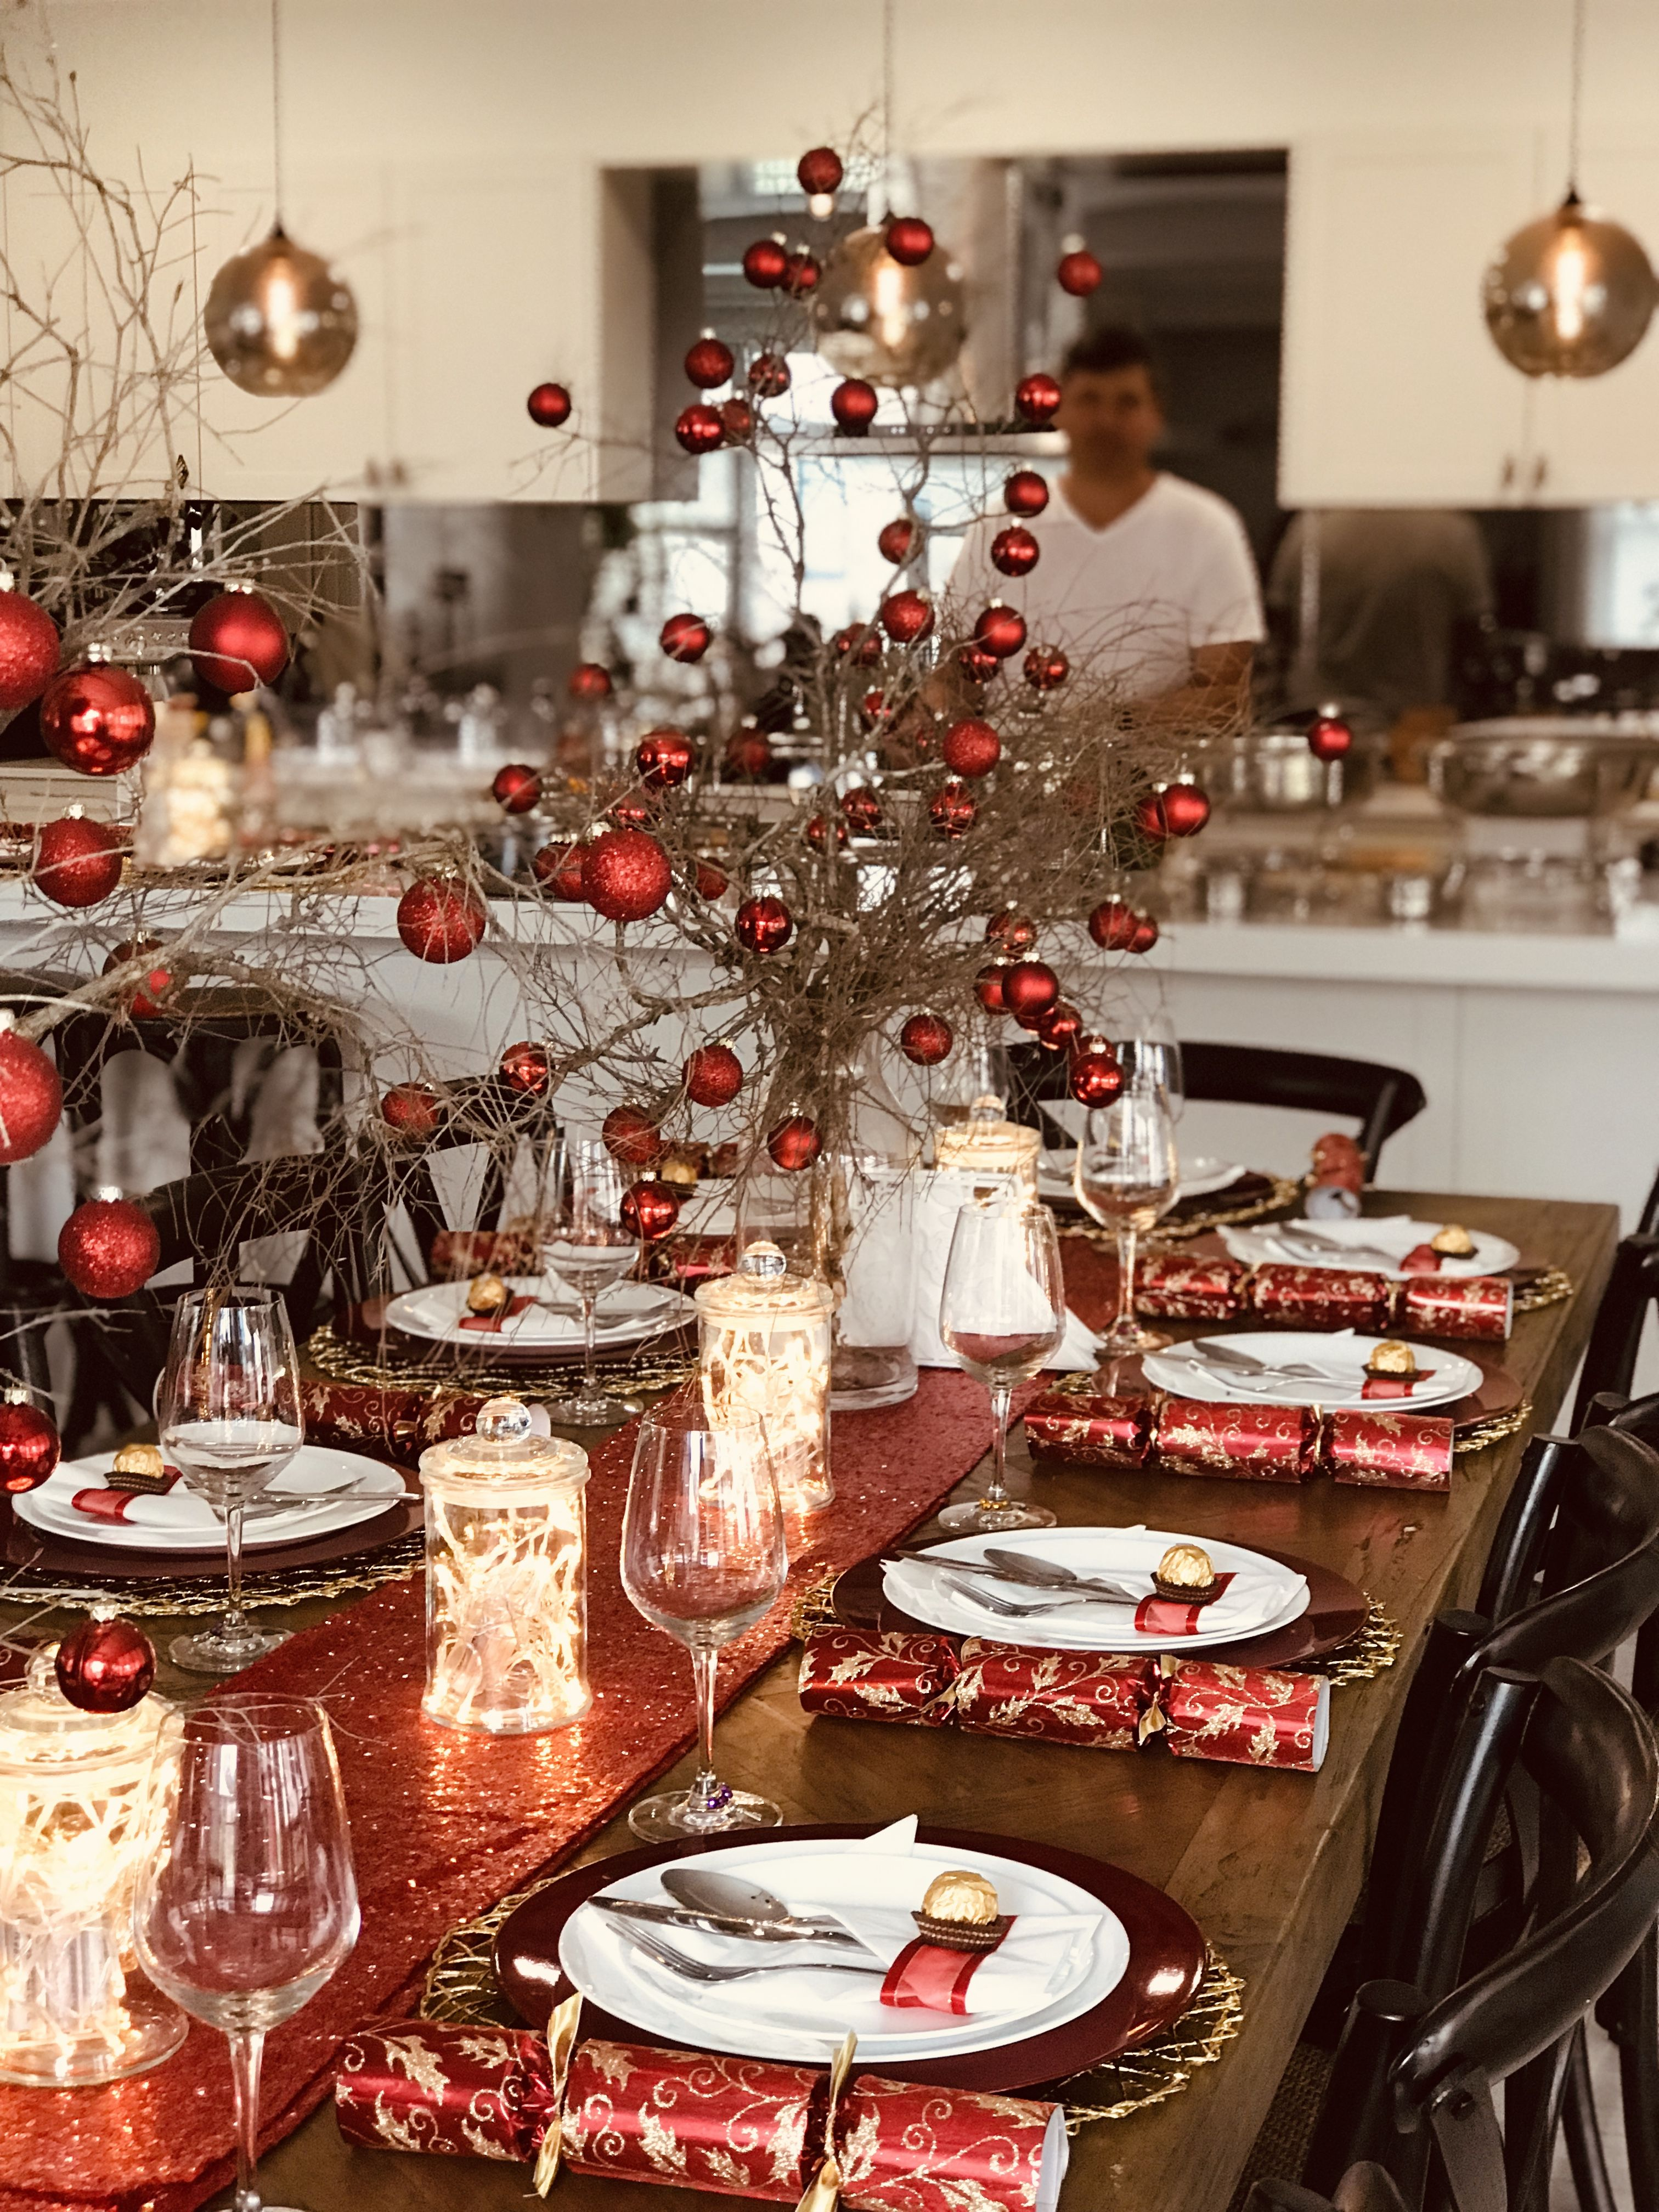 Christmas Table Setting With Gold Placemats Red Charger Plates Christmas Dinner Table Christmas Table Christmas Table Settings